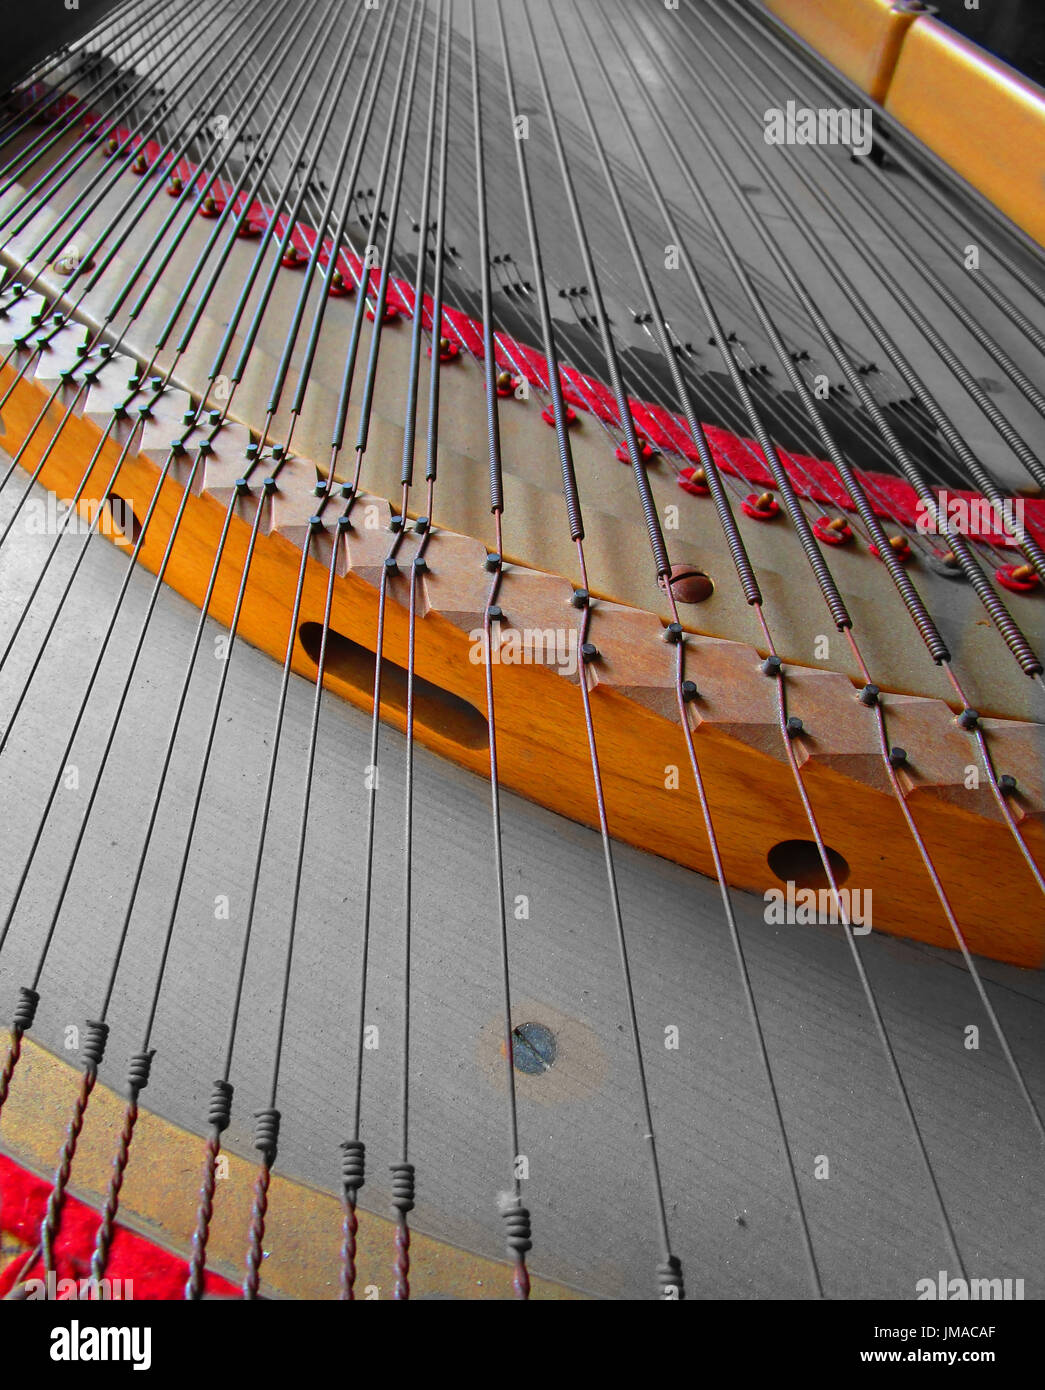 Piano, detail ropes and intense colors - Stock Image